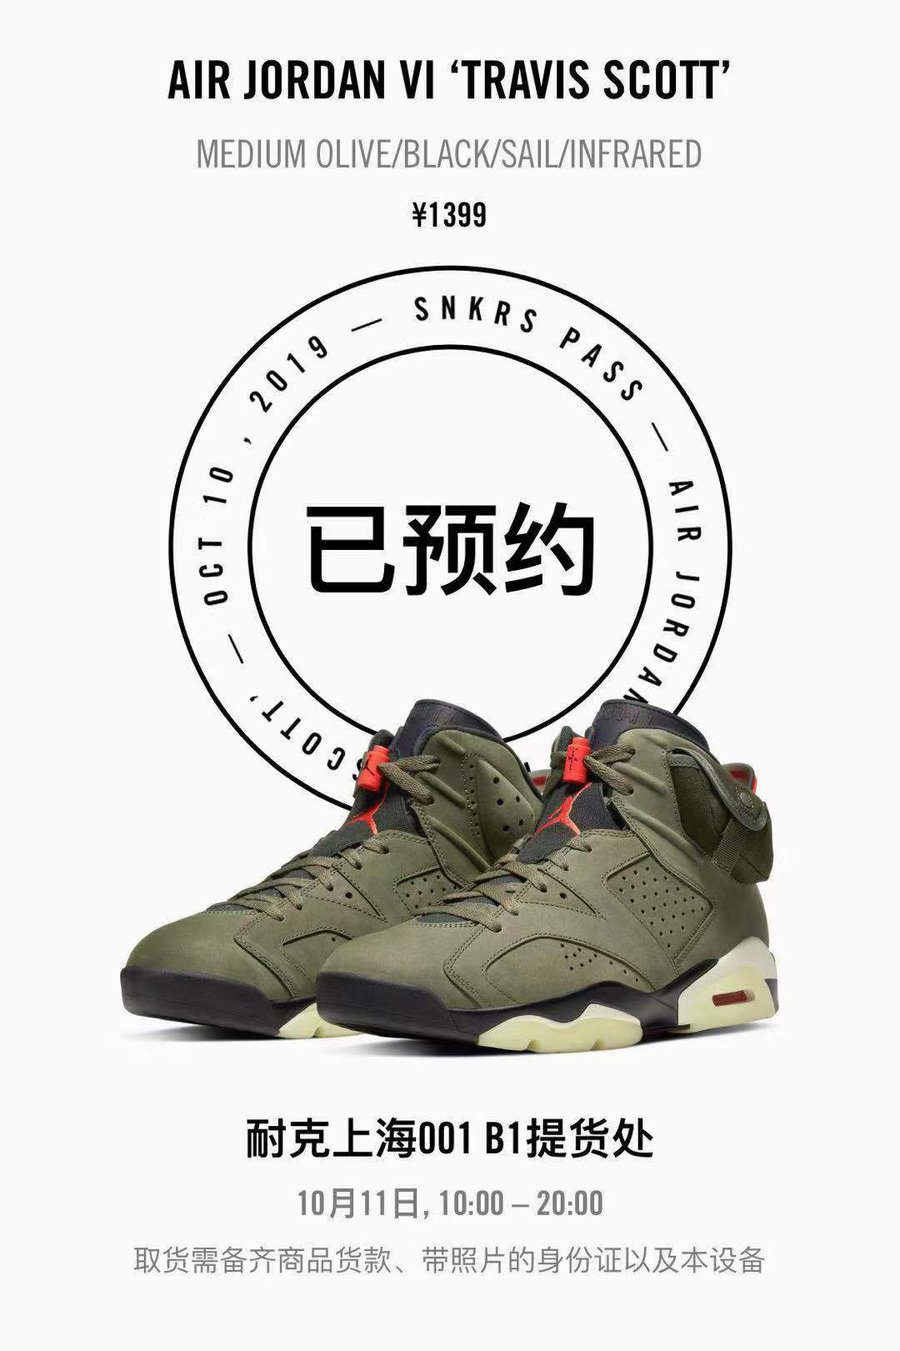 Air Jordan 6,AJ6,Travis Scott,  一场有预警的 SNKRS PASS!今早的 TS x AJ6 你约到了吗?